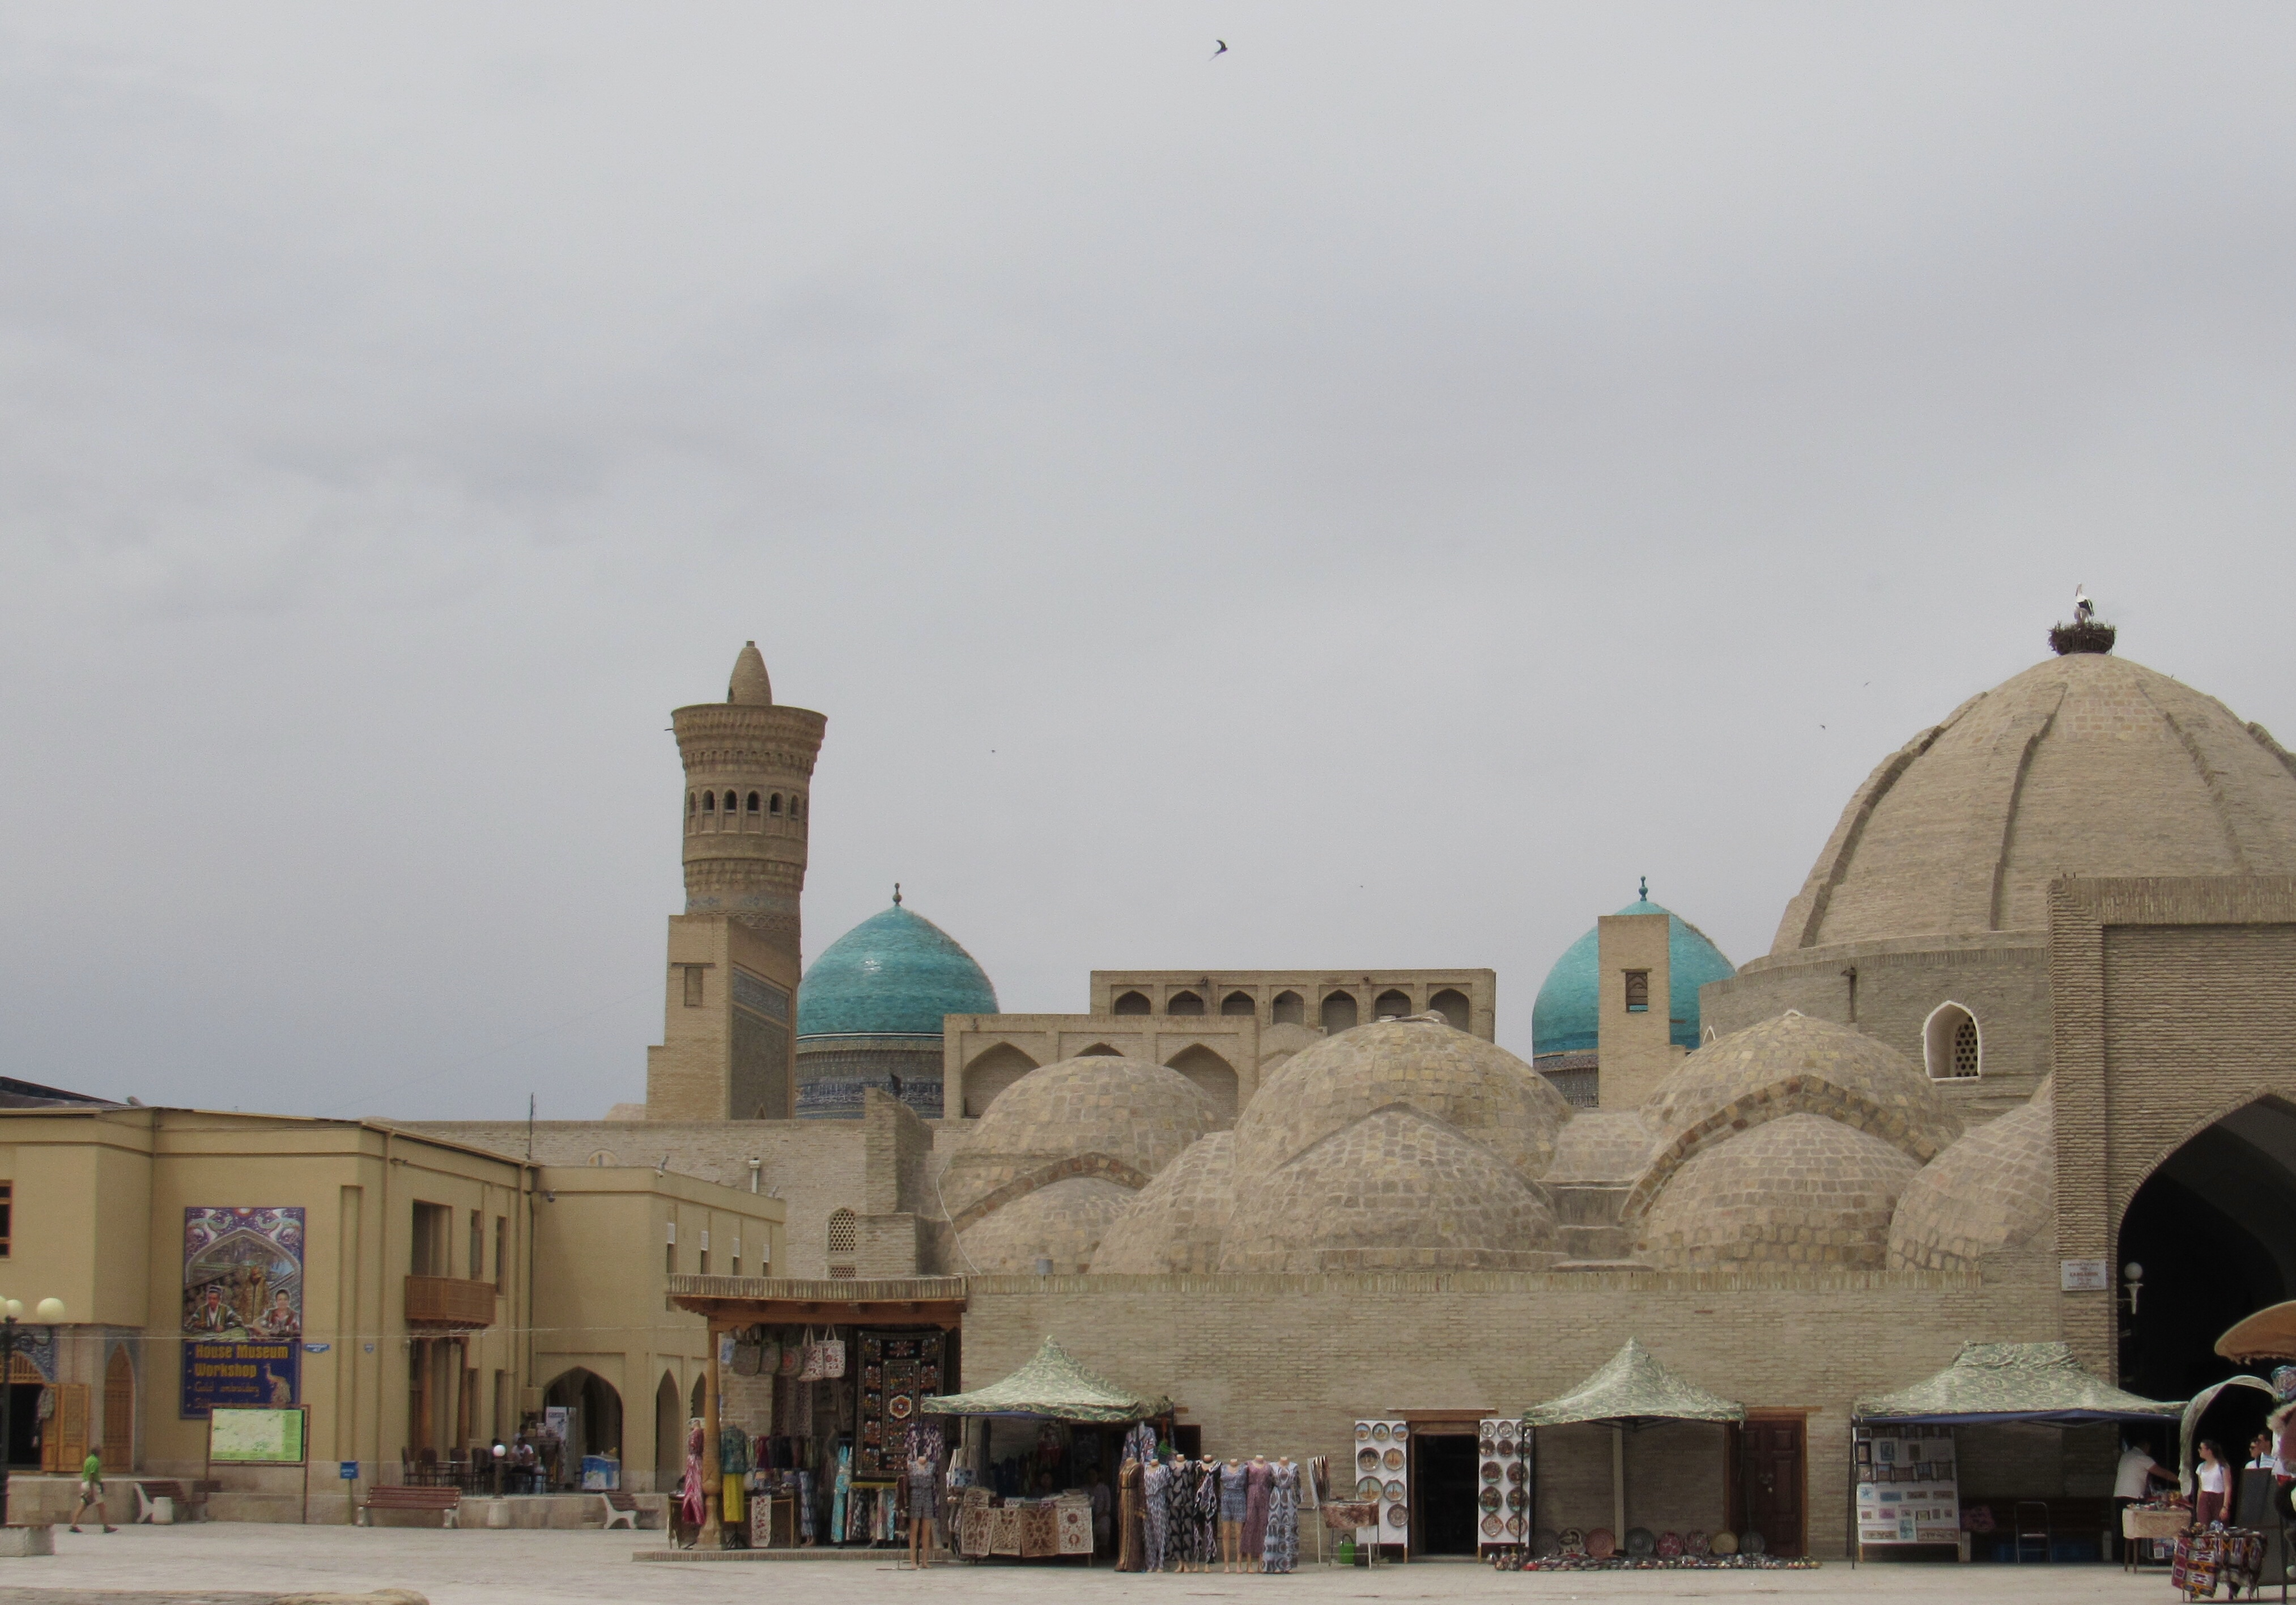 Domed bazaar, Kalyon minaret and mosque